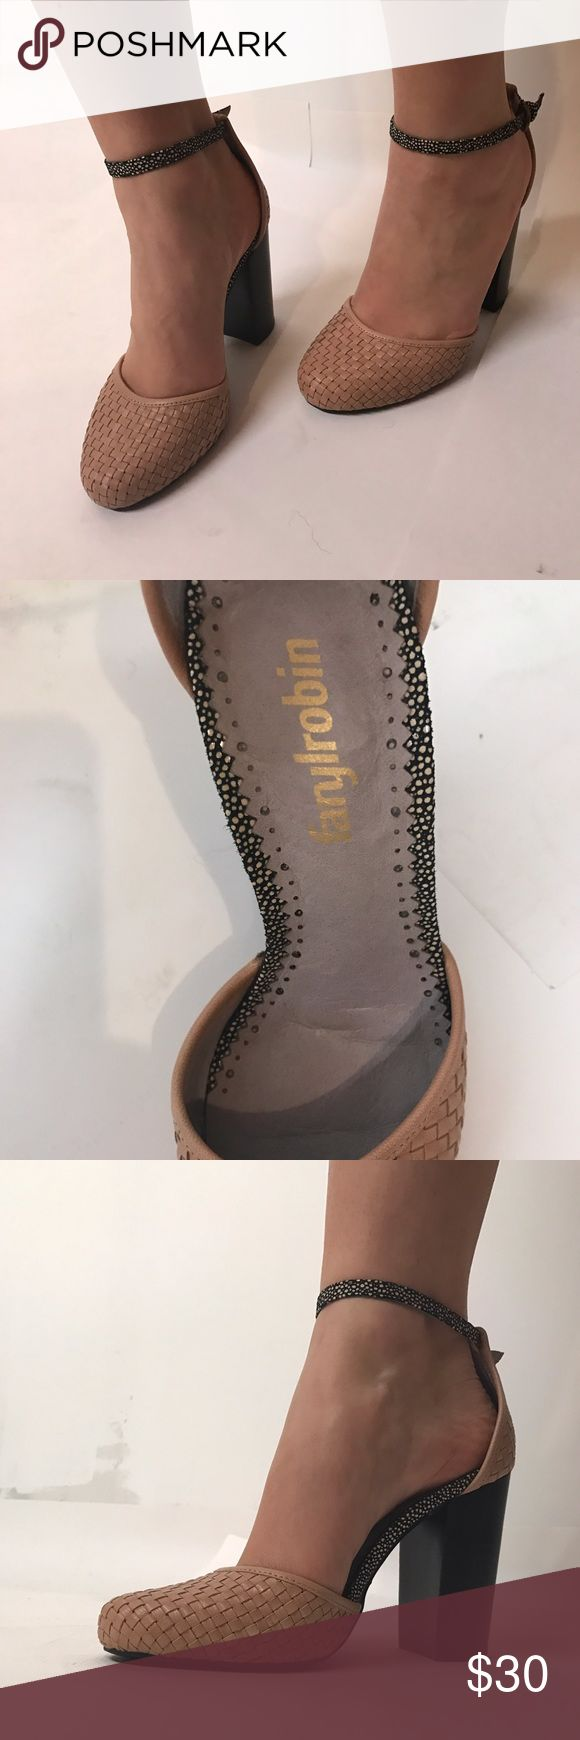 Faryl Robin Closed Toe Shoes 5.5 A beautiful pair of heels. Match it with pretty much any outfit. Faryl Robin Shoes Heels